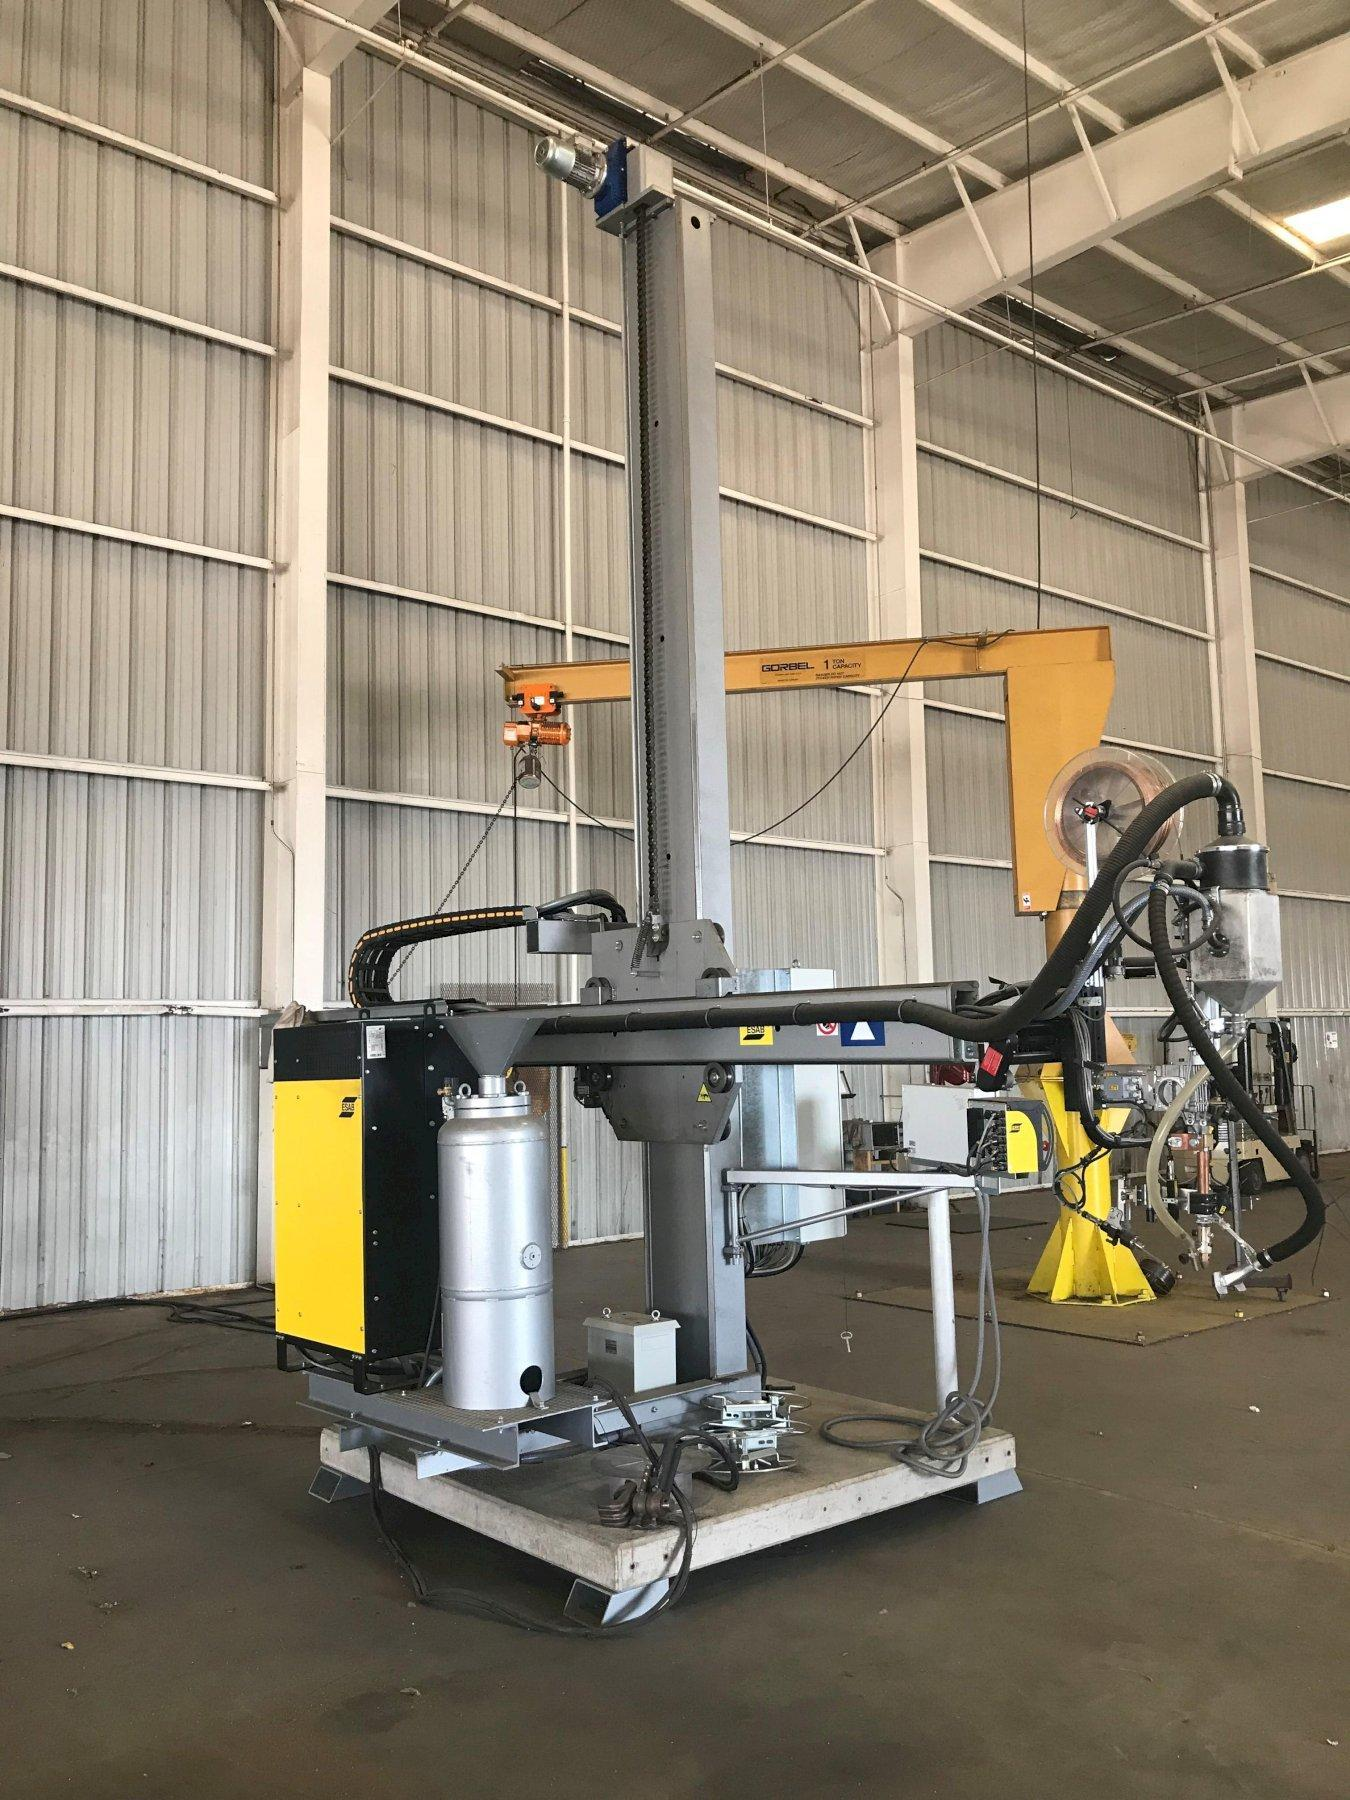 Esab CaB 300M Column & Book Welding Manipulator, New 2019